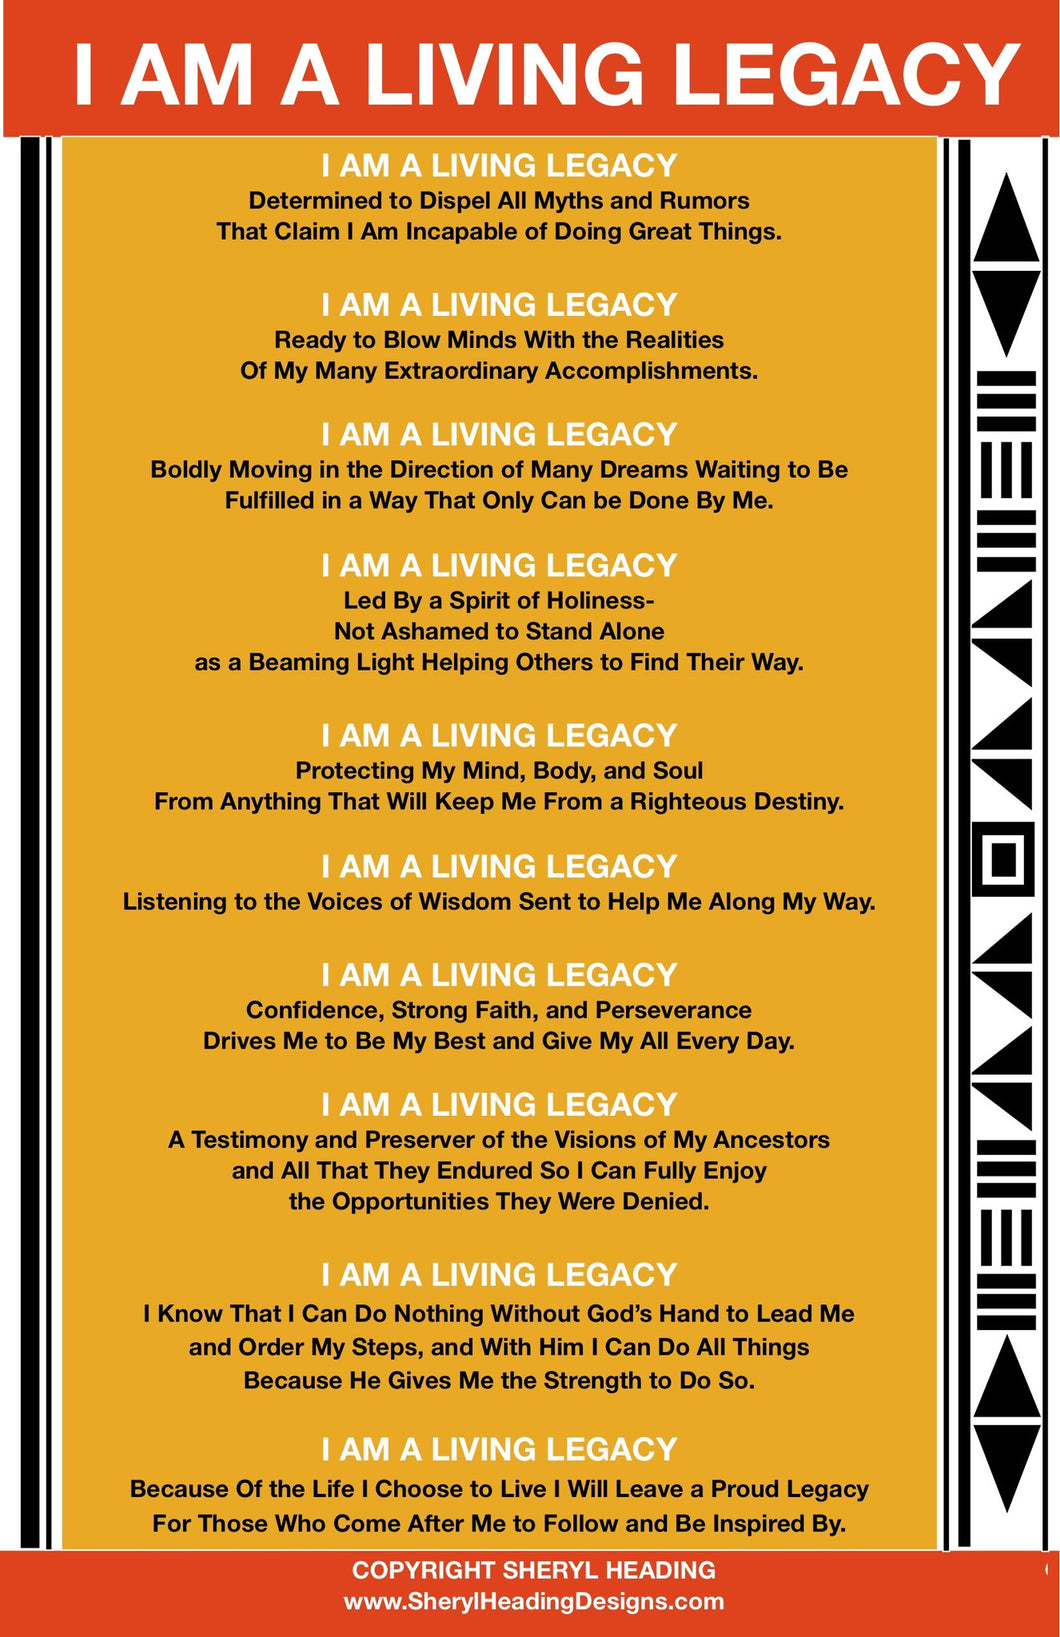 I AM A LIVING LEGACY/GOLD Poster - Sheryl Heading Designs